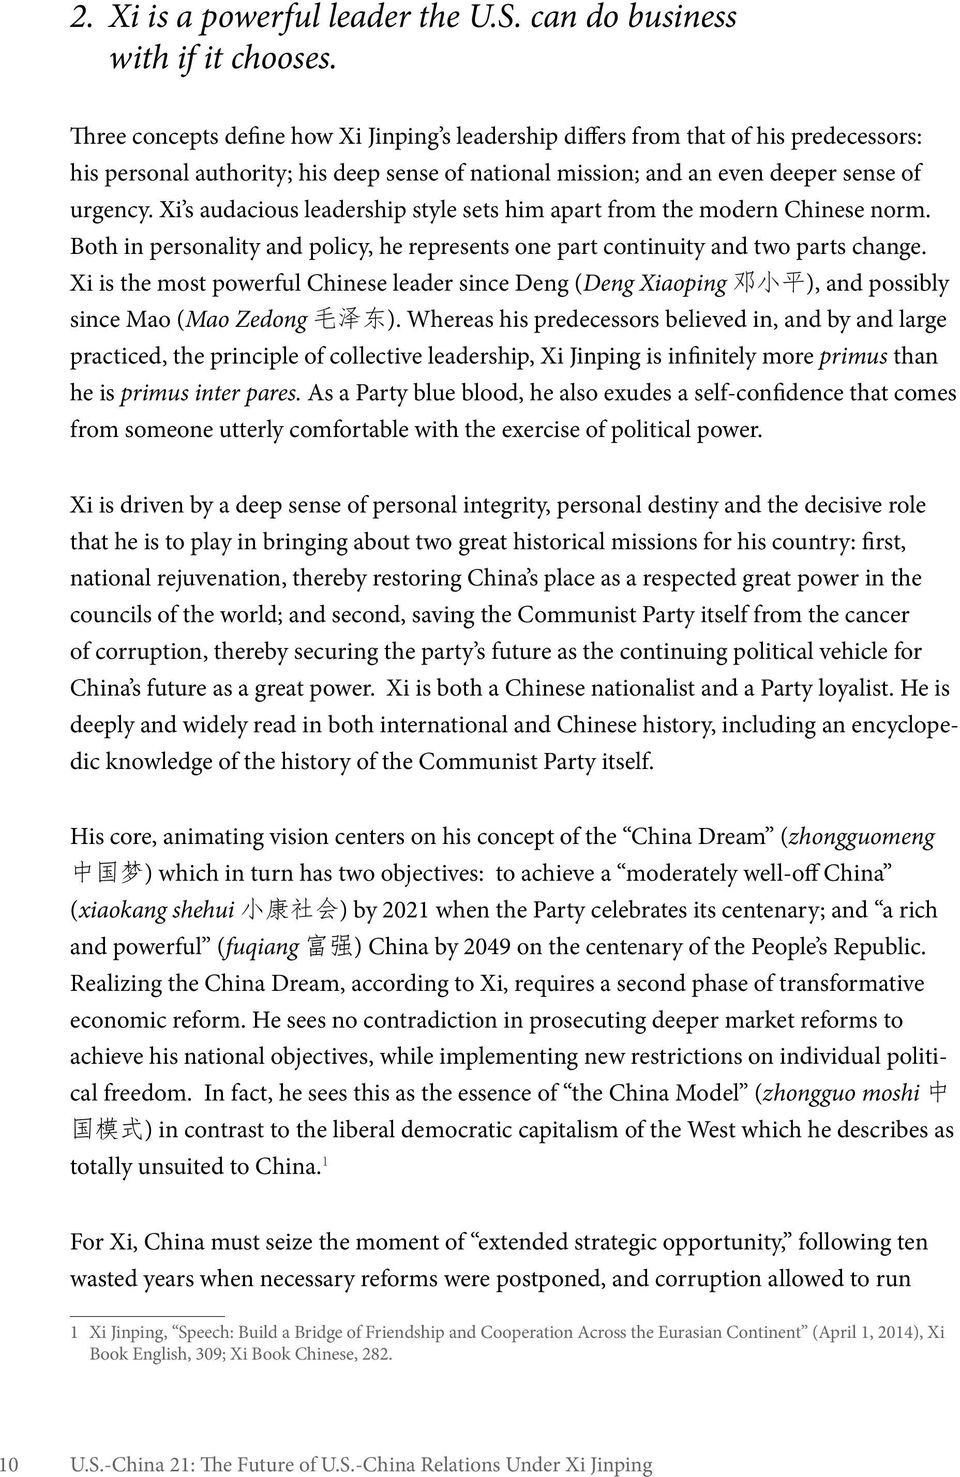 Xi s audacious leadership style sets him apart from the modern Chinese norm. Both in personality and policy, he represents one part continuity and two parts change.